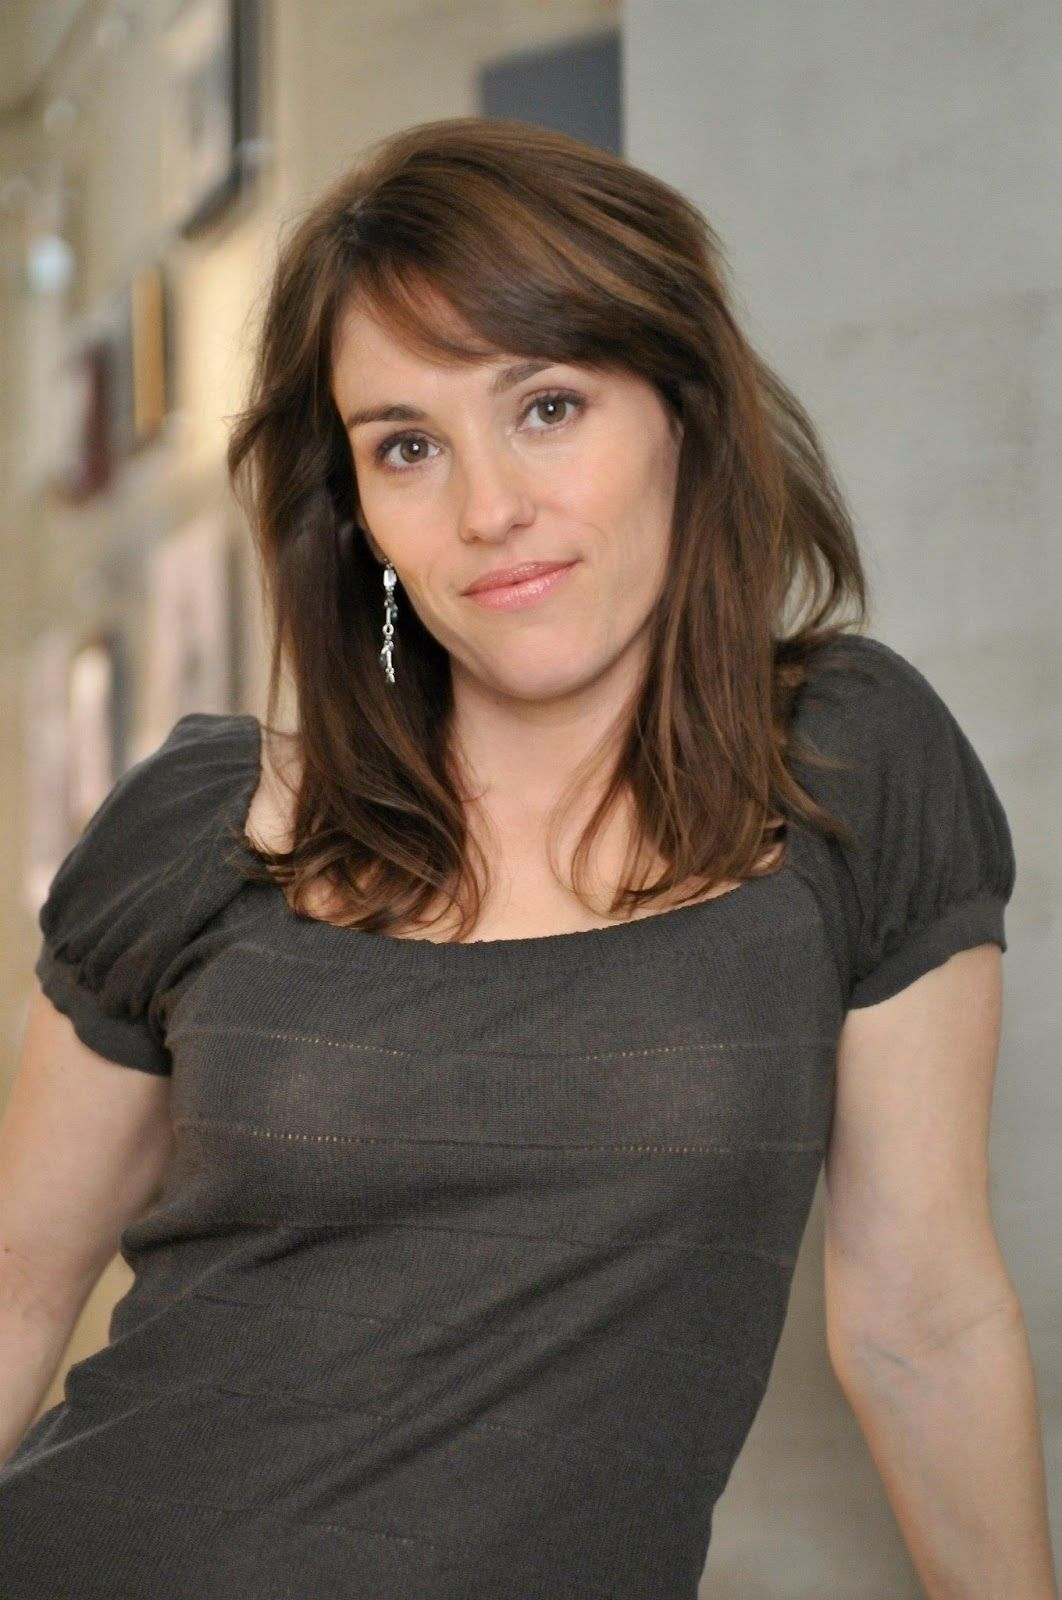 37 Hot Pictures Of Amy Jo Johnson   The First Pink Ranger in Power 1062x1600